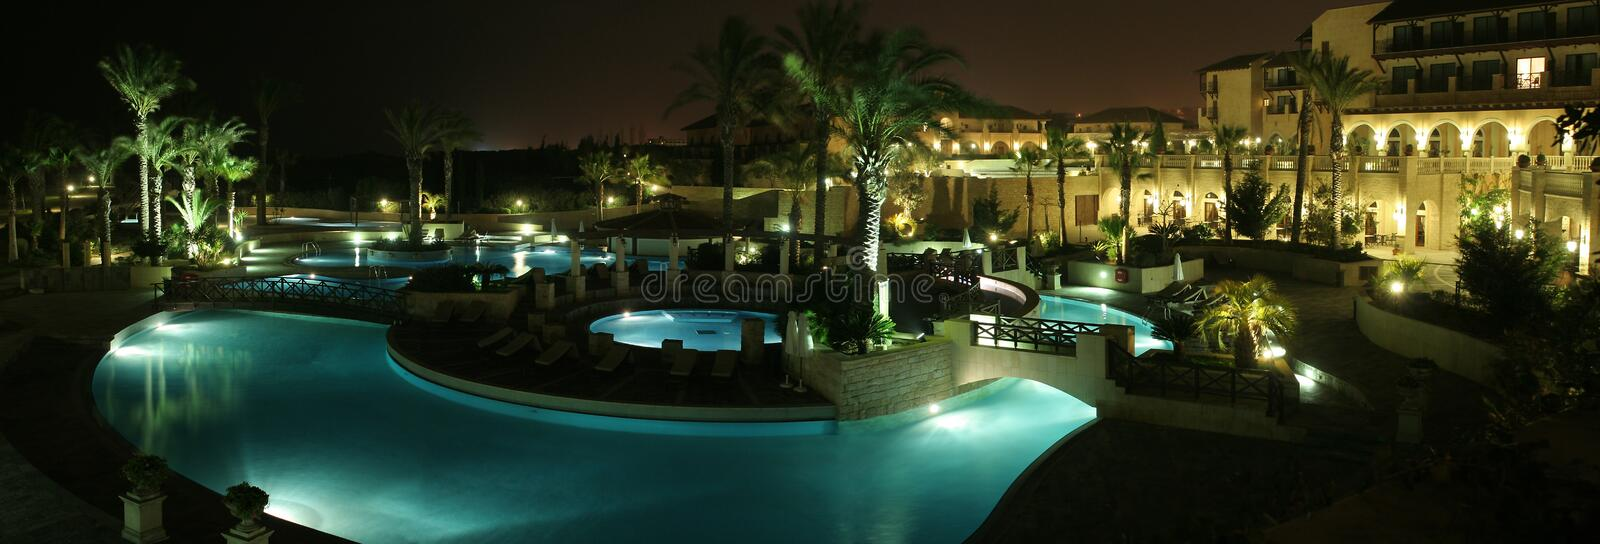 HOTEL IN CYPRUS royalty free stock photography